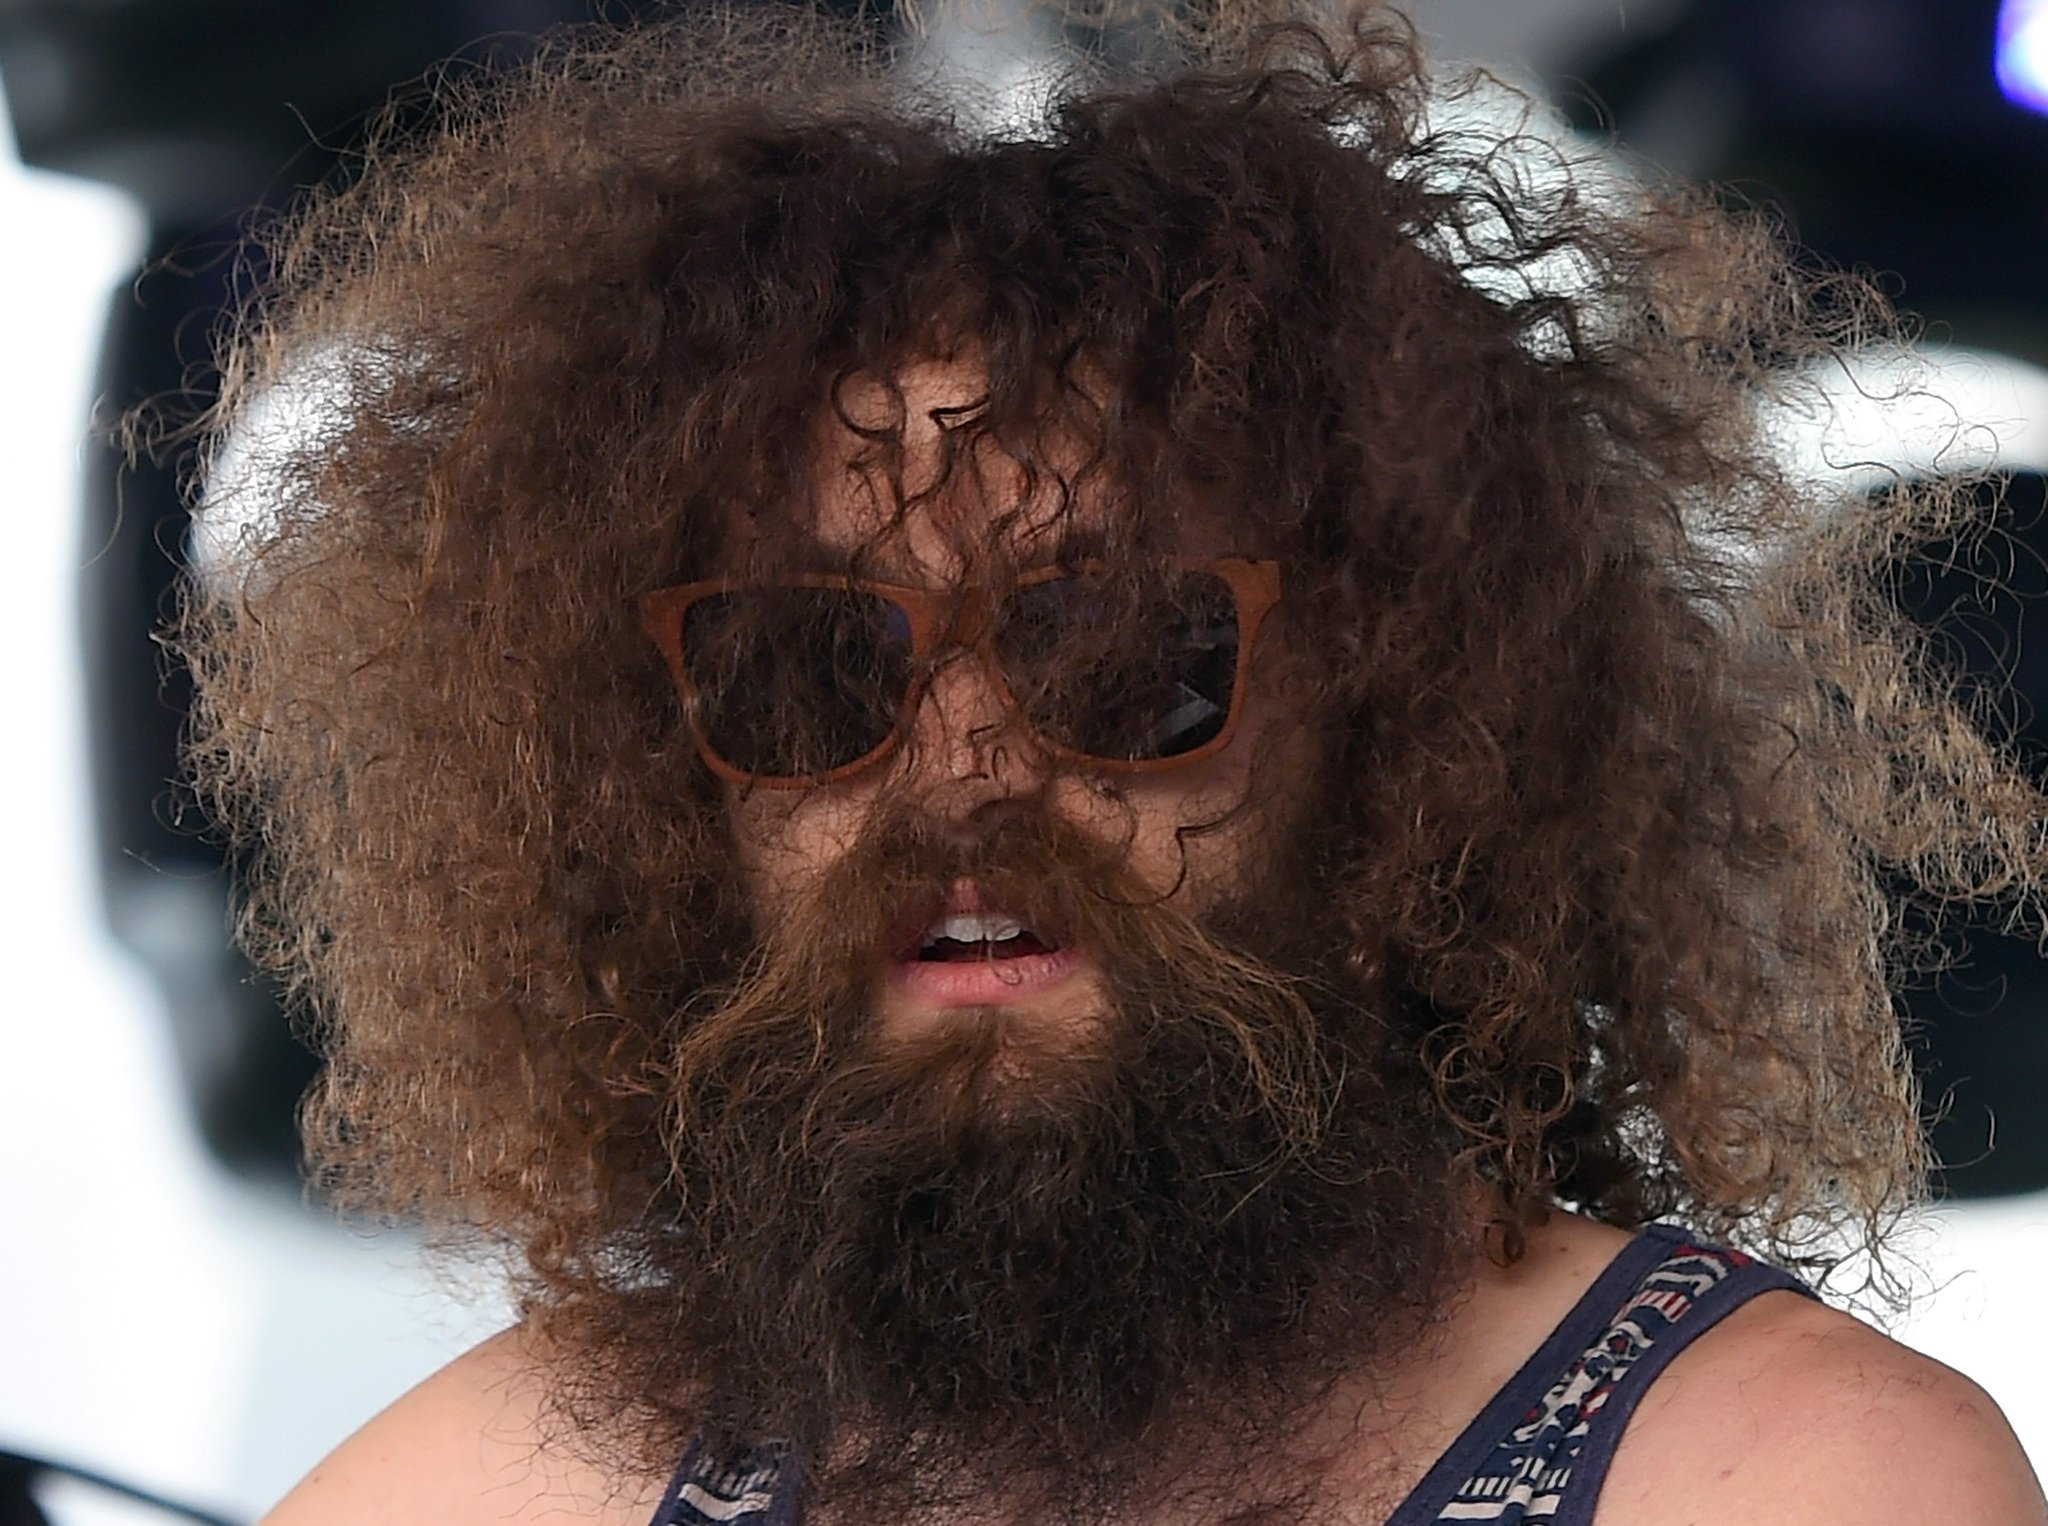 The Gaslamp Killer's defamation lawsuit against one rape accuser thrown out https://t.co/XNZw3RYdmw https://t.co/VNrVYHJ1mB